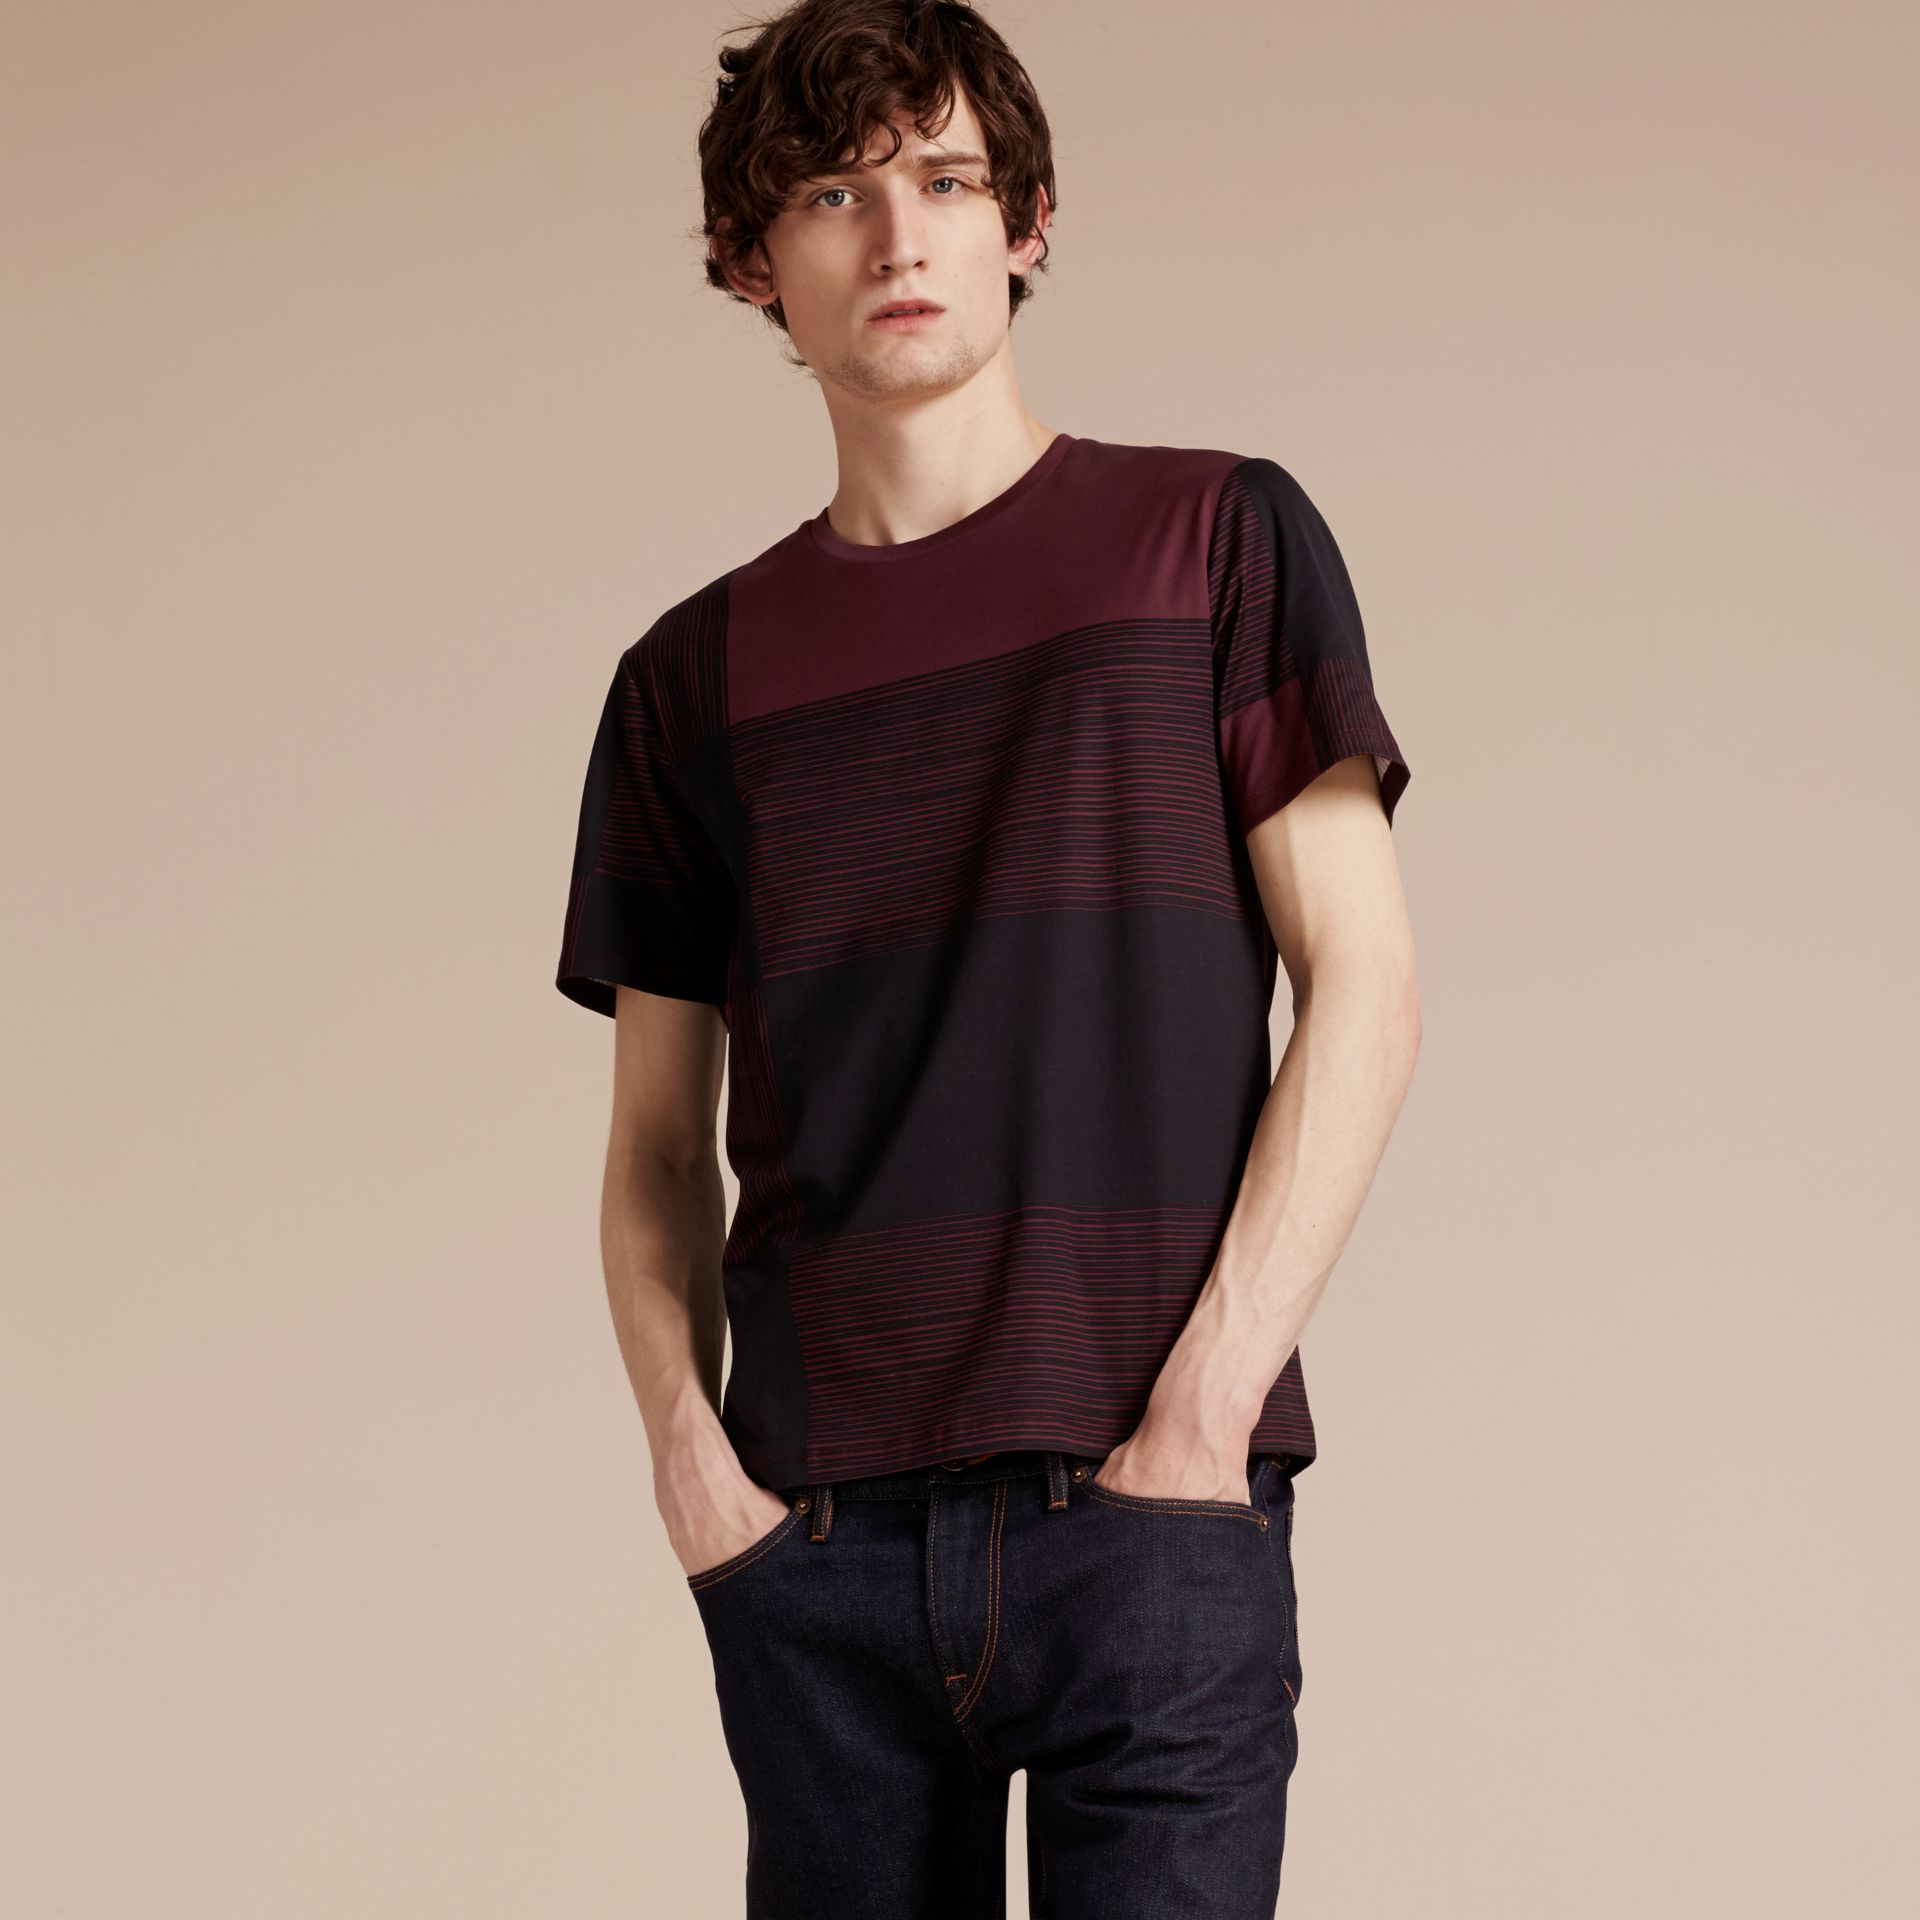 Burgundy Check Print Cotton T-shirt Burgundy - gallery image 6